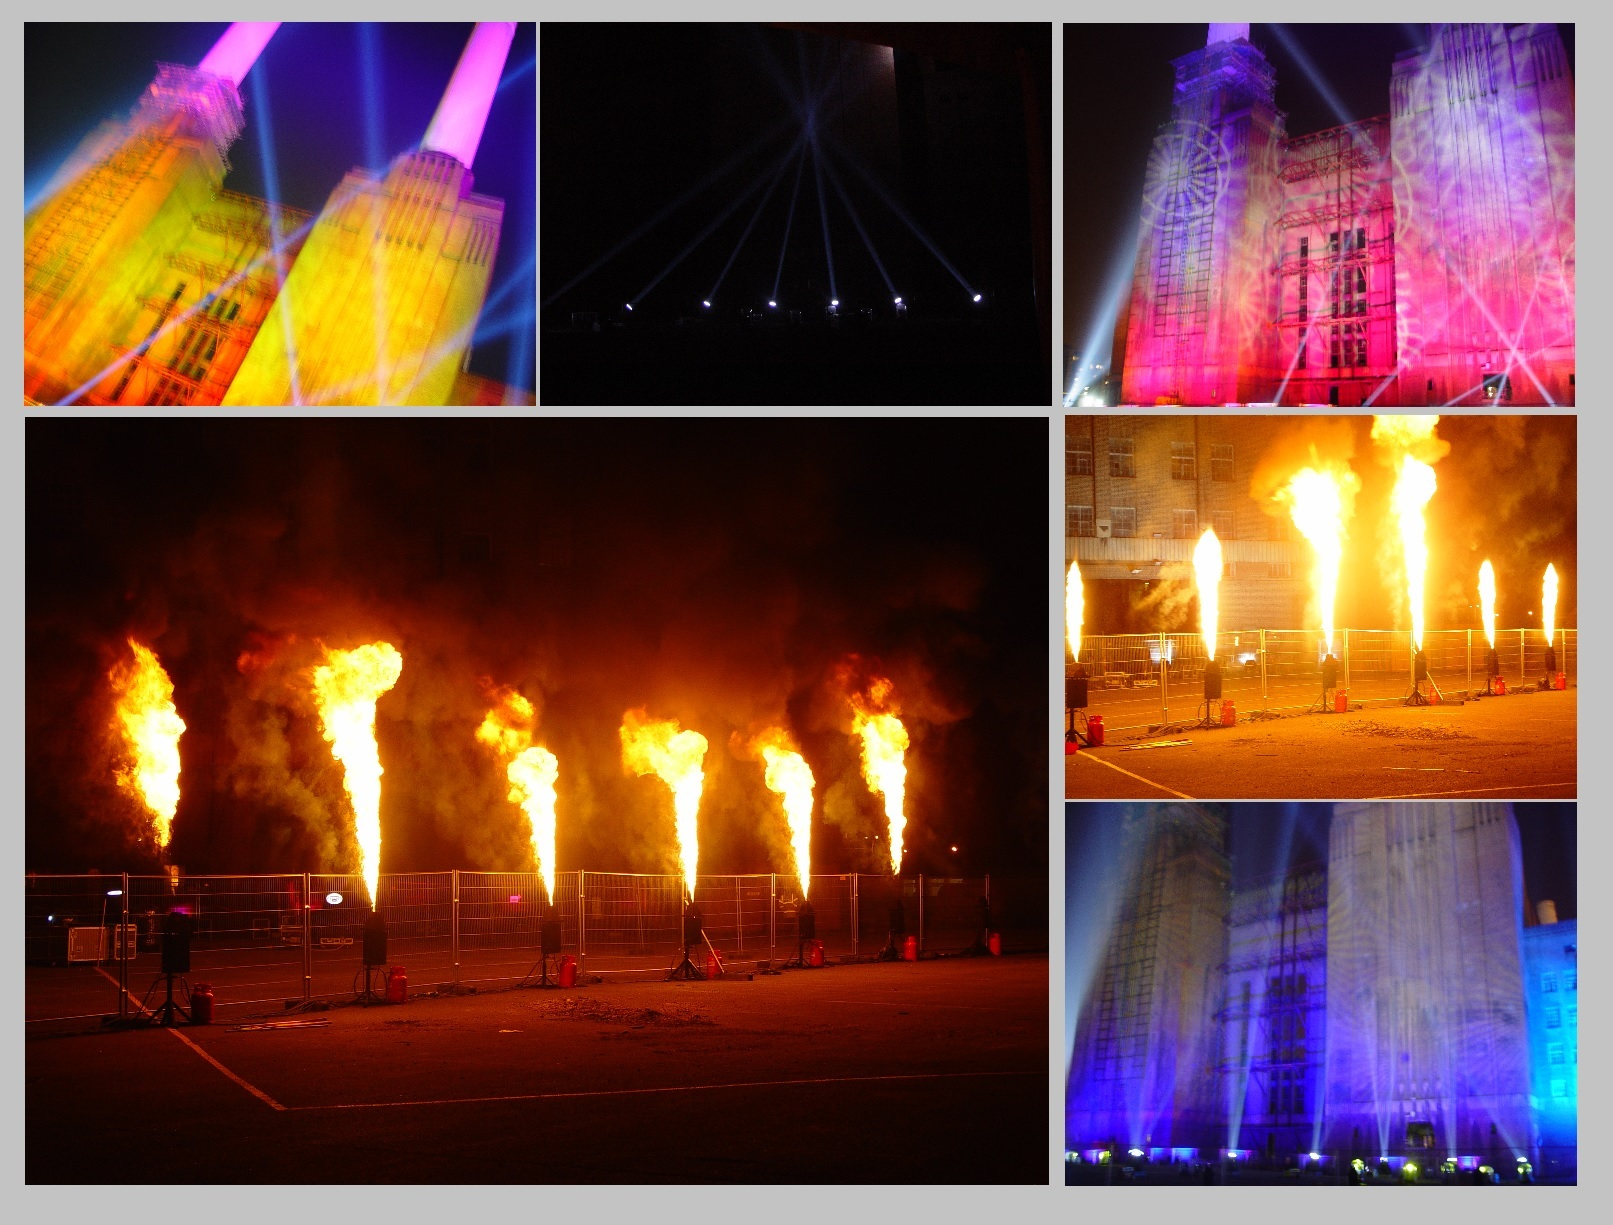 Flames, Searchlights, Lighting at Battersea Power Station